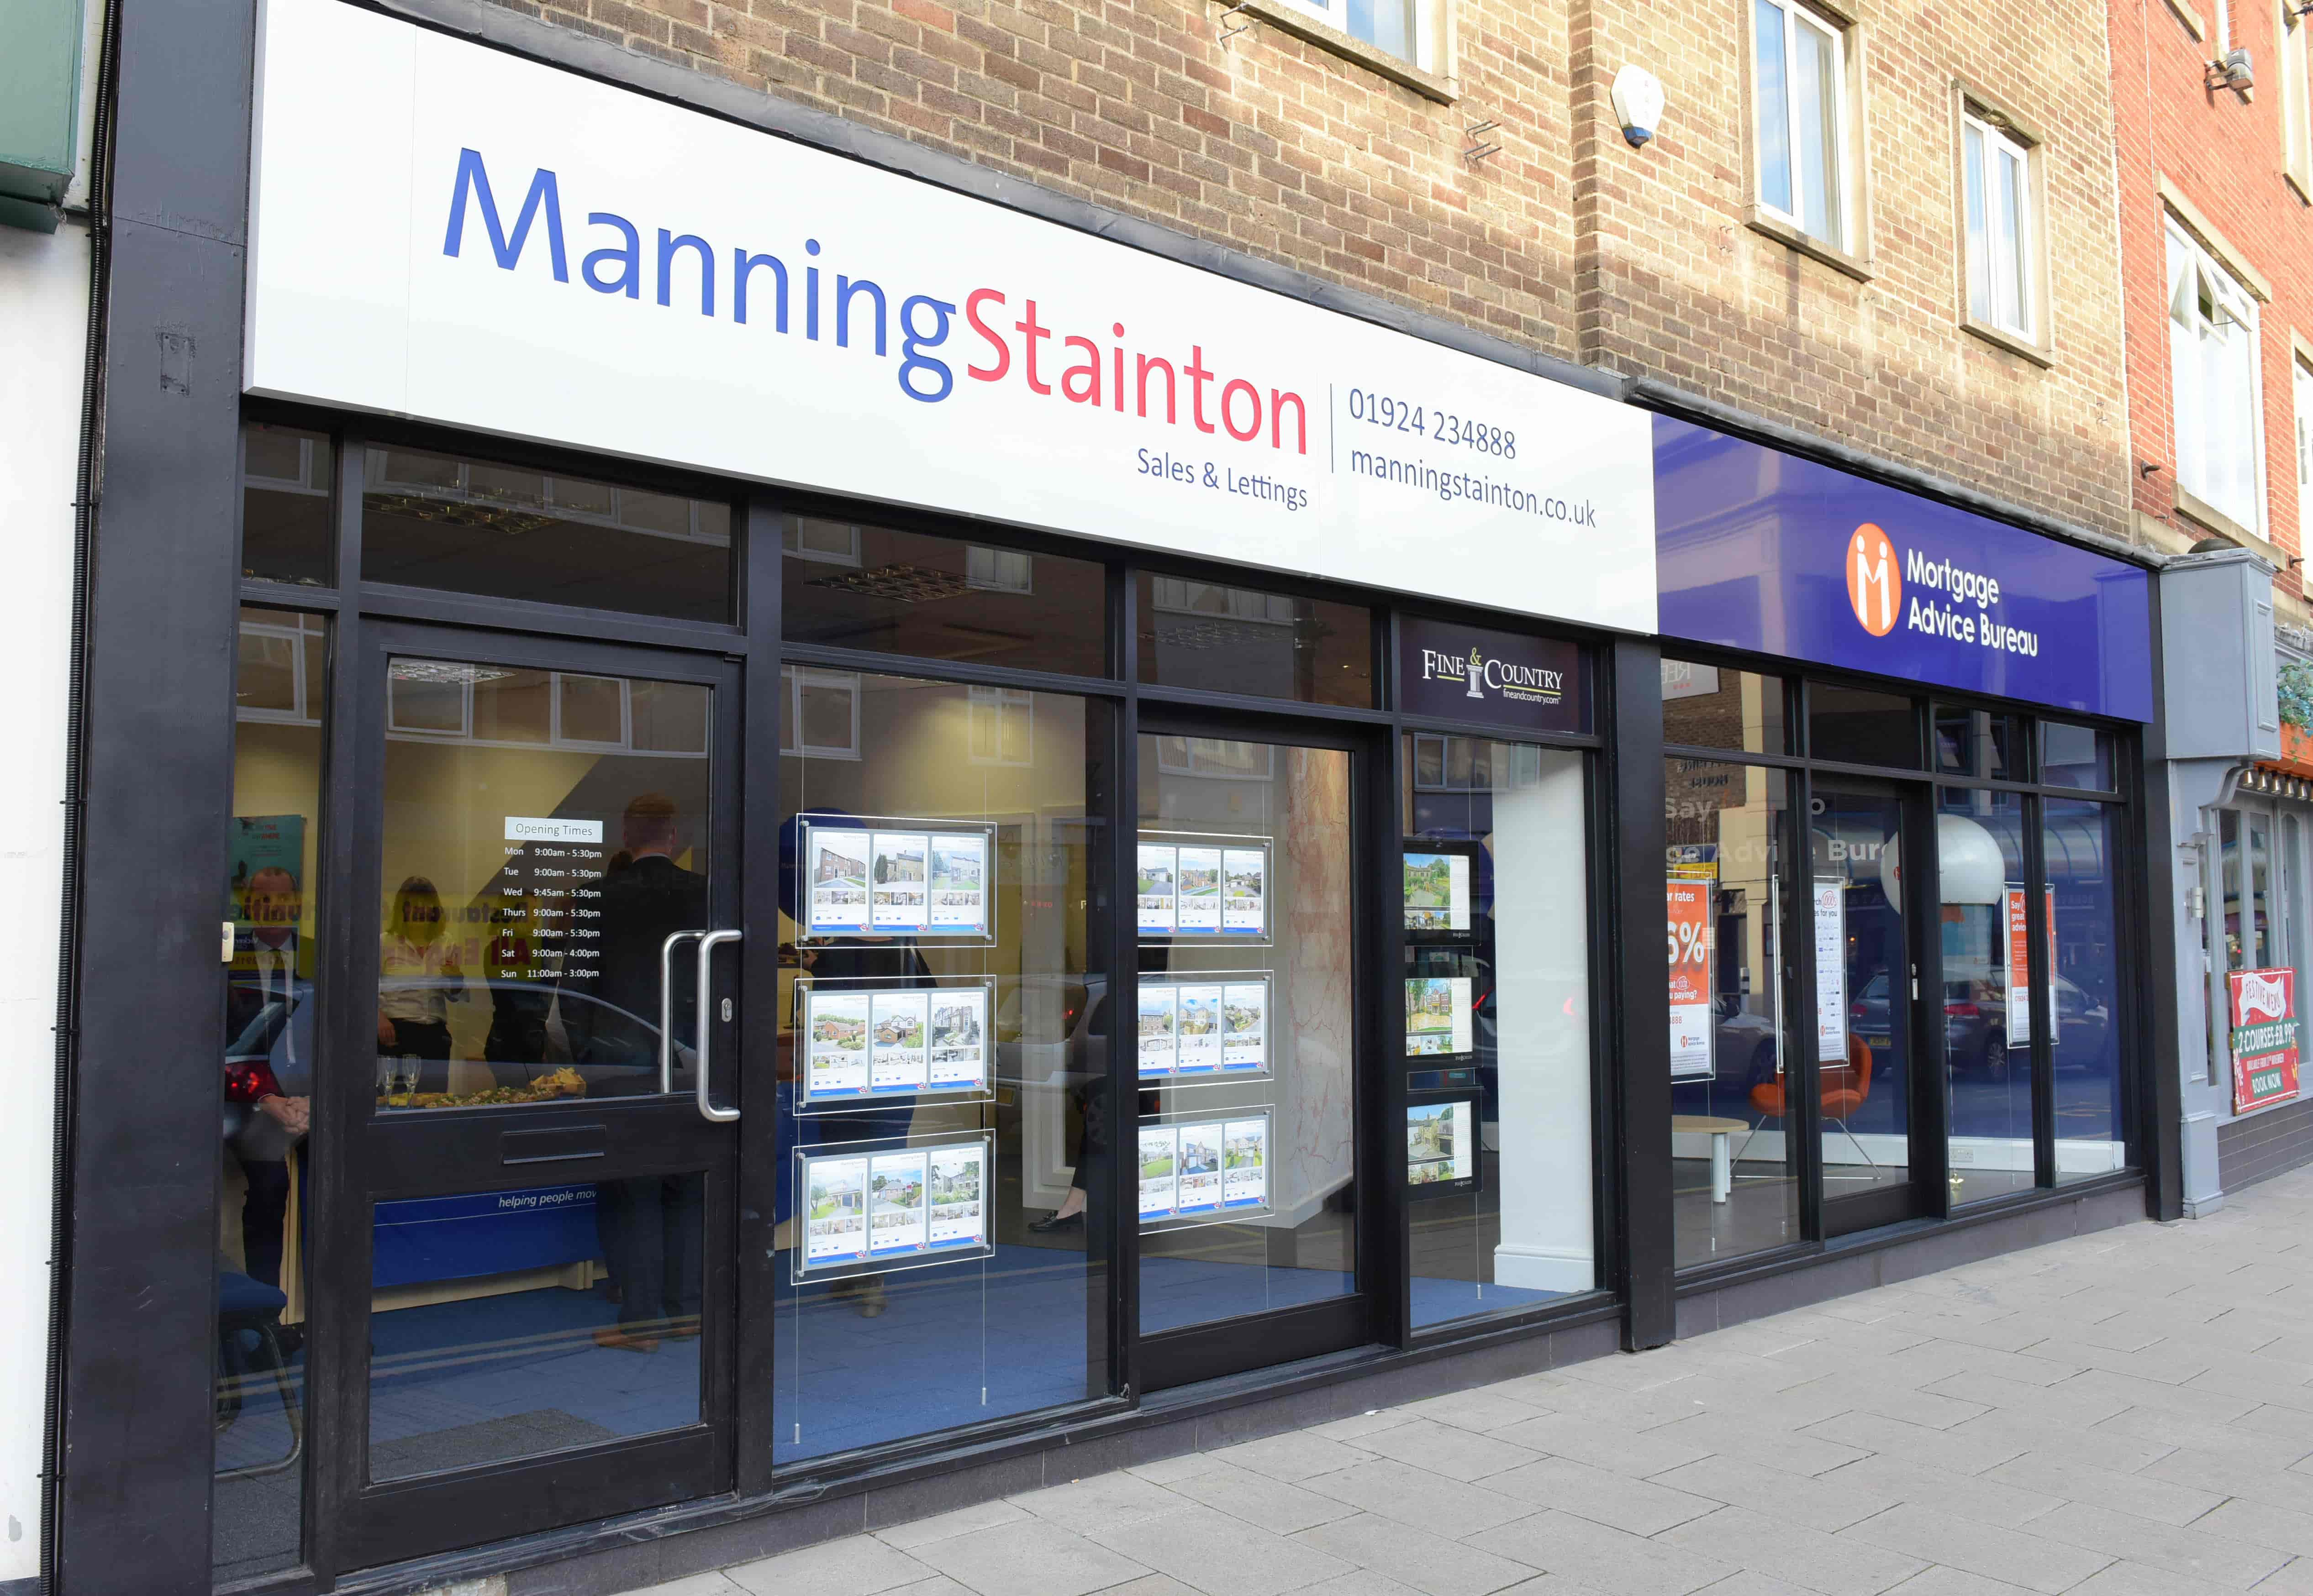 External Image Of Manning Stainton Estate Agents In Leeds Branch